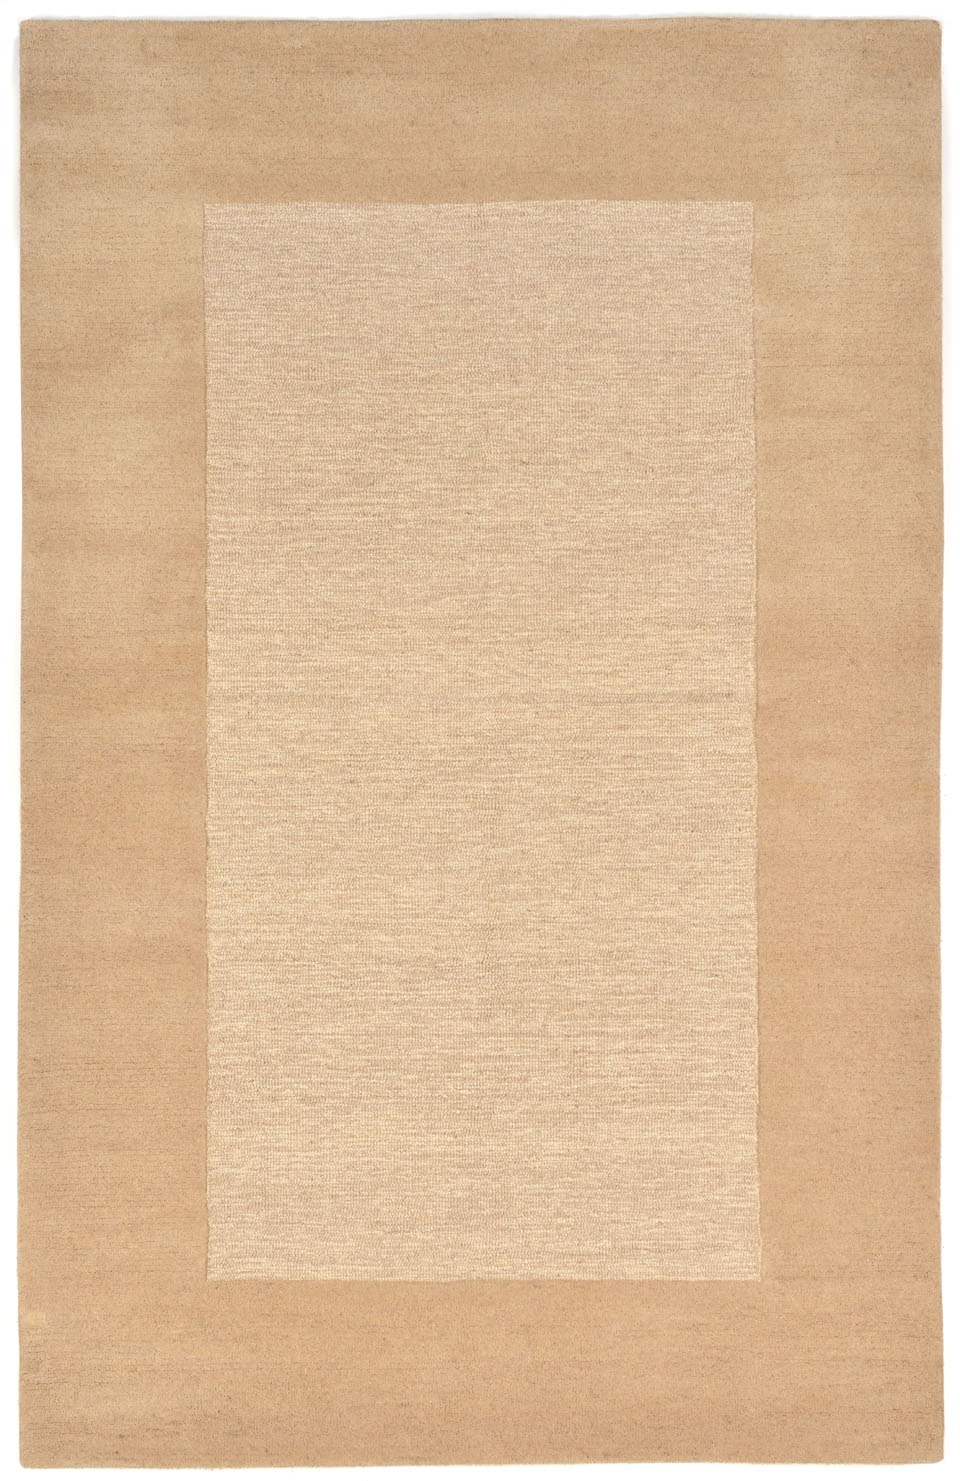 Trans Ocean Liora Manne Madrid 1300 12 Border Neutral Closeout Area Rug Rugs A Bound